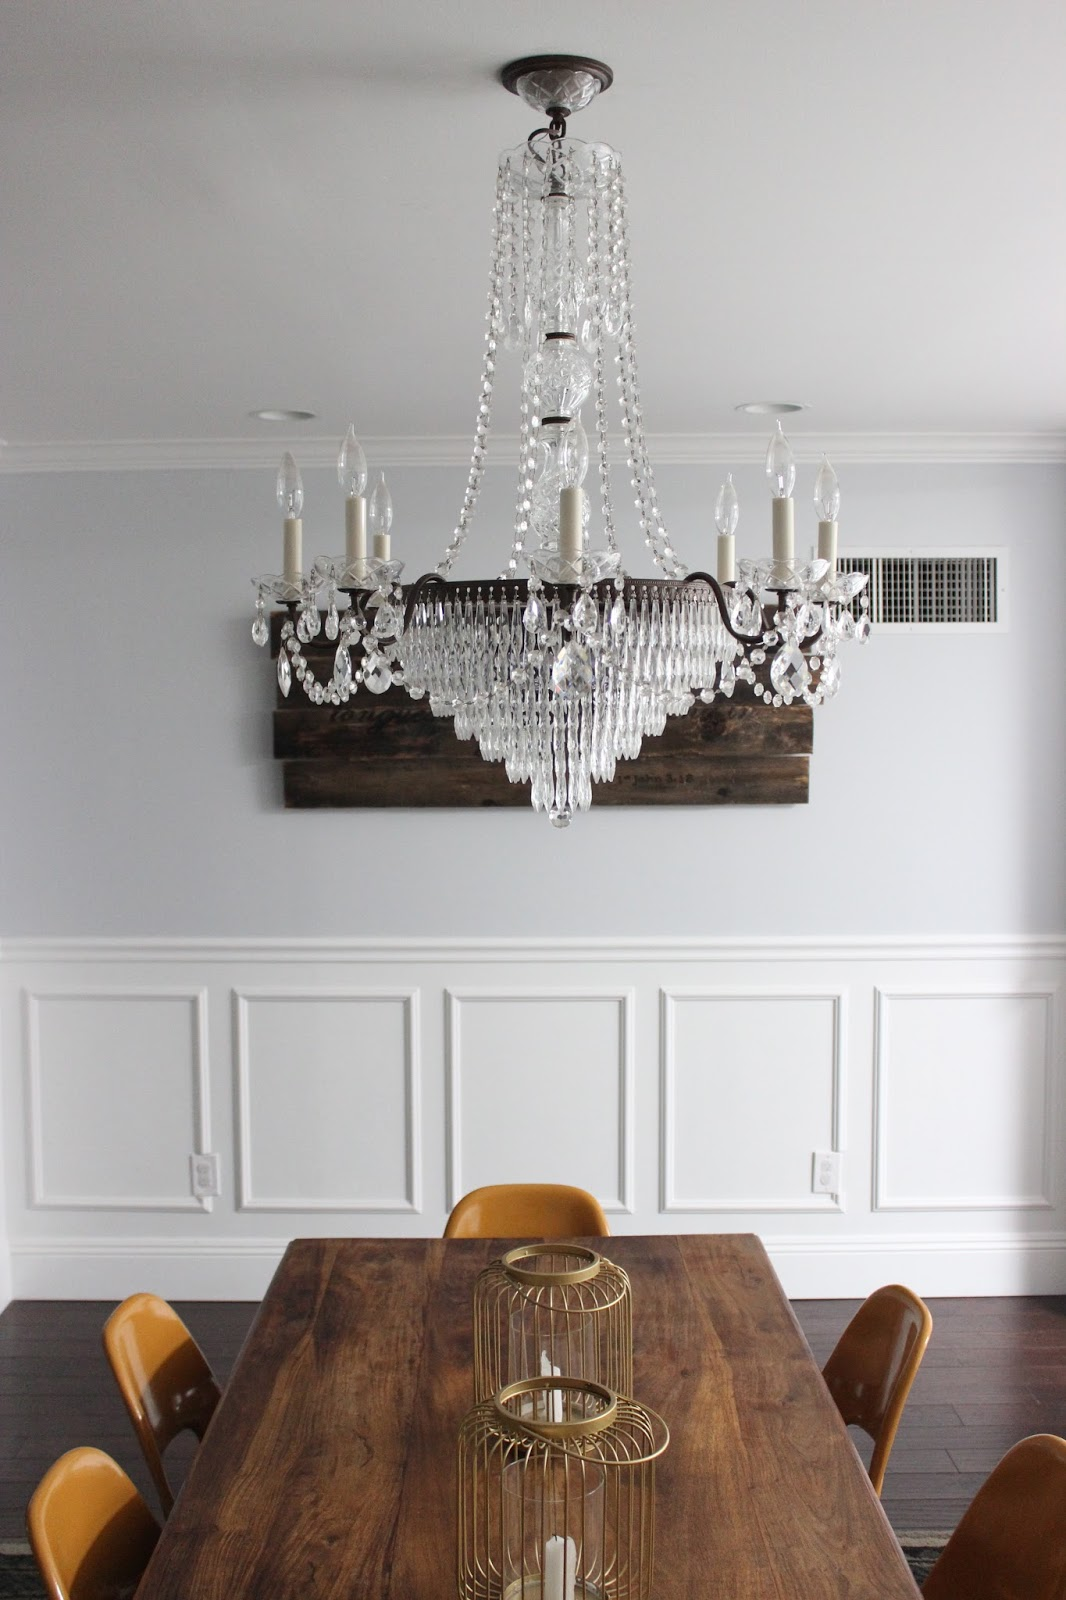 Our schonbek chandelier dream book design once we got it home we installed it right away we couldnt wait to see it in action even though we already tested that it was working at the guys house aloadofball Images